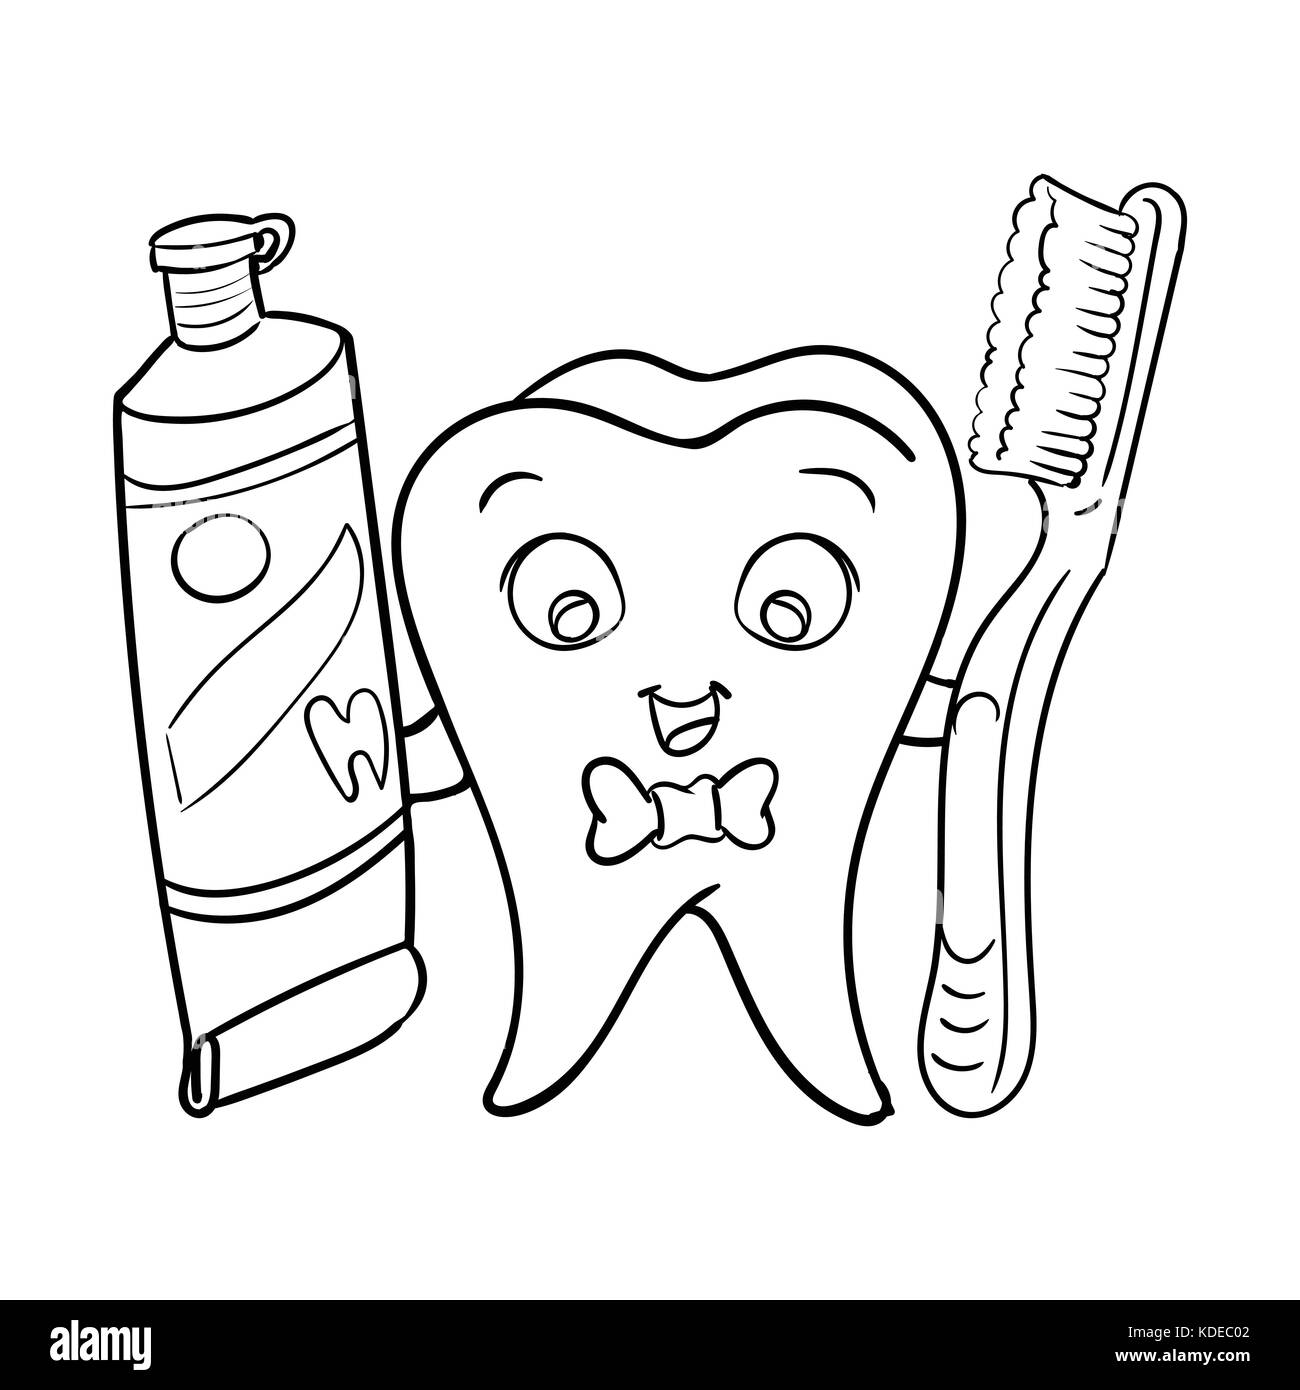 Cartoon Smiley Dental Tooth Holding Tooth Paste And Tooth